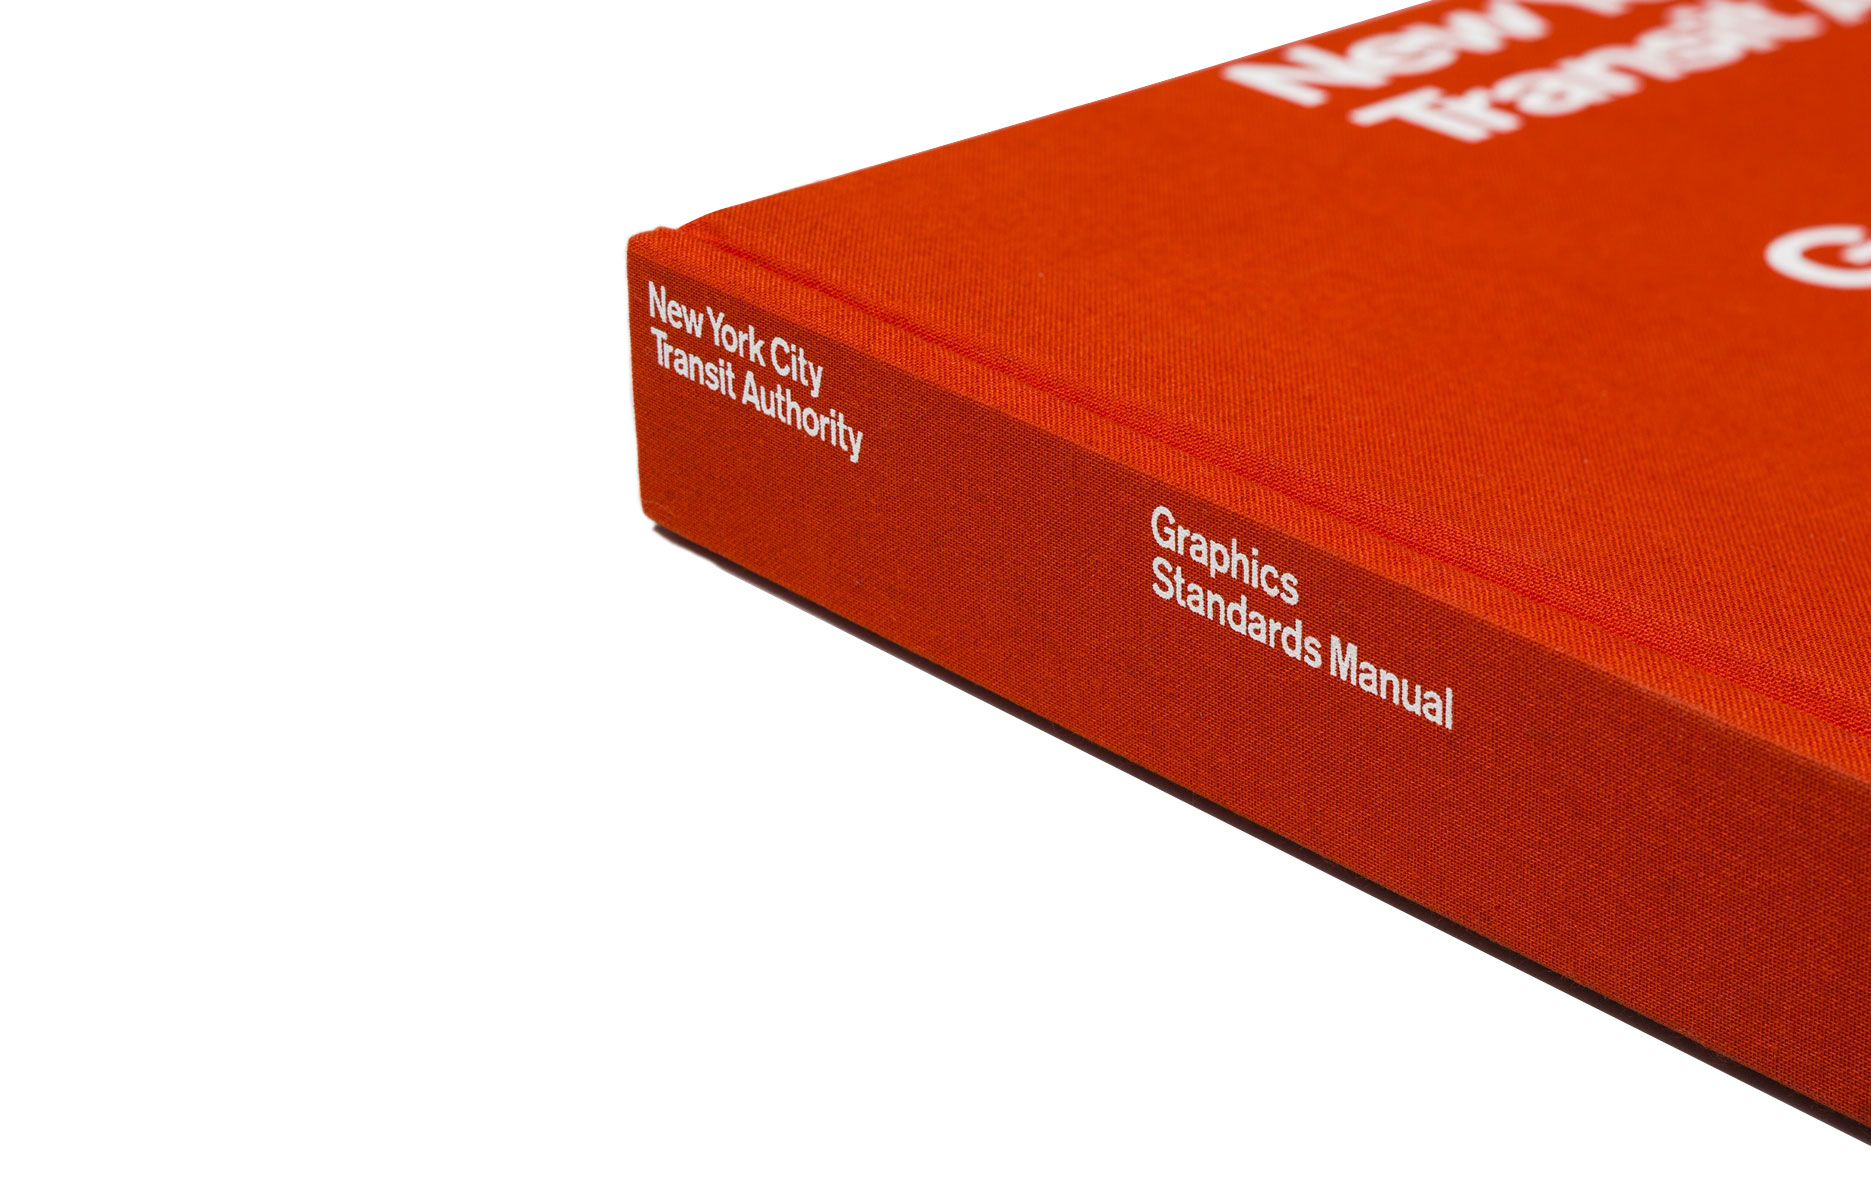 The NYCTA GraphicsStandards Manual reissue